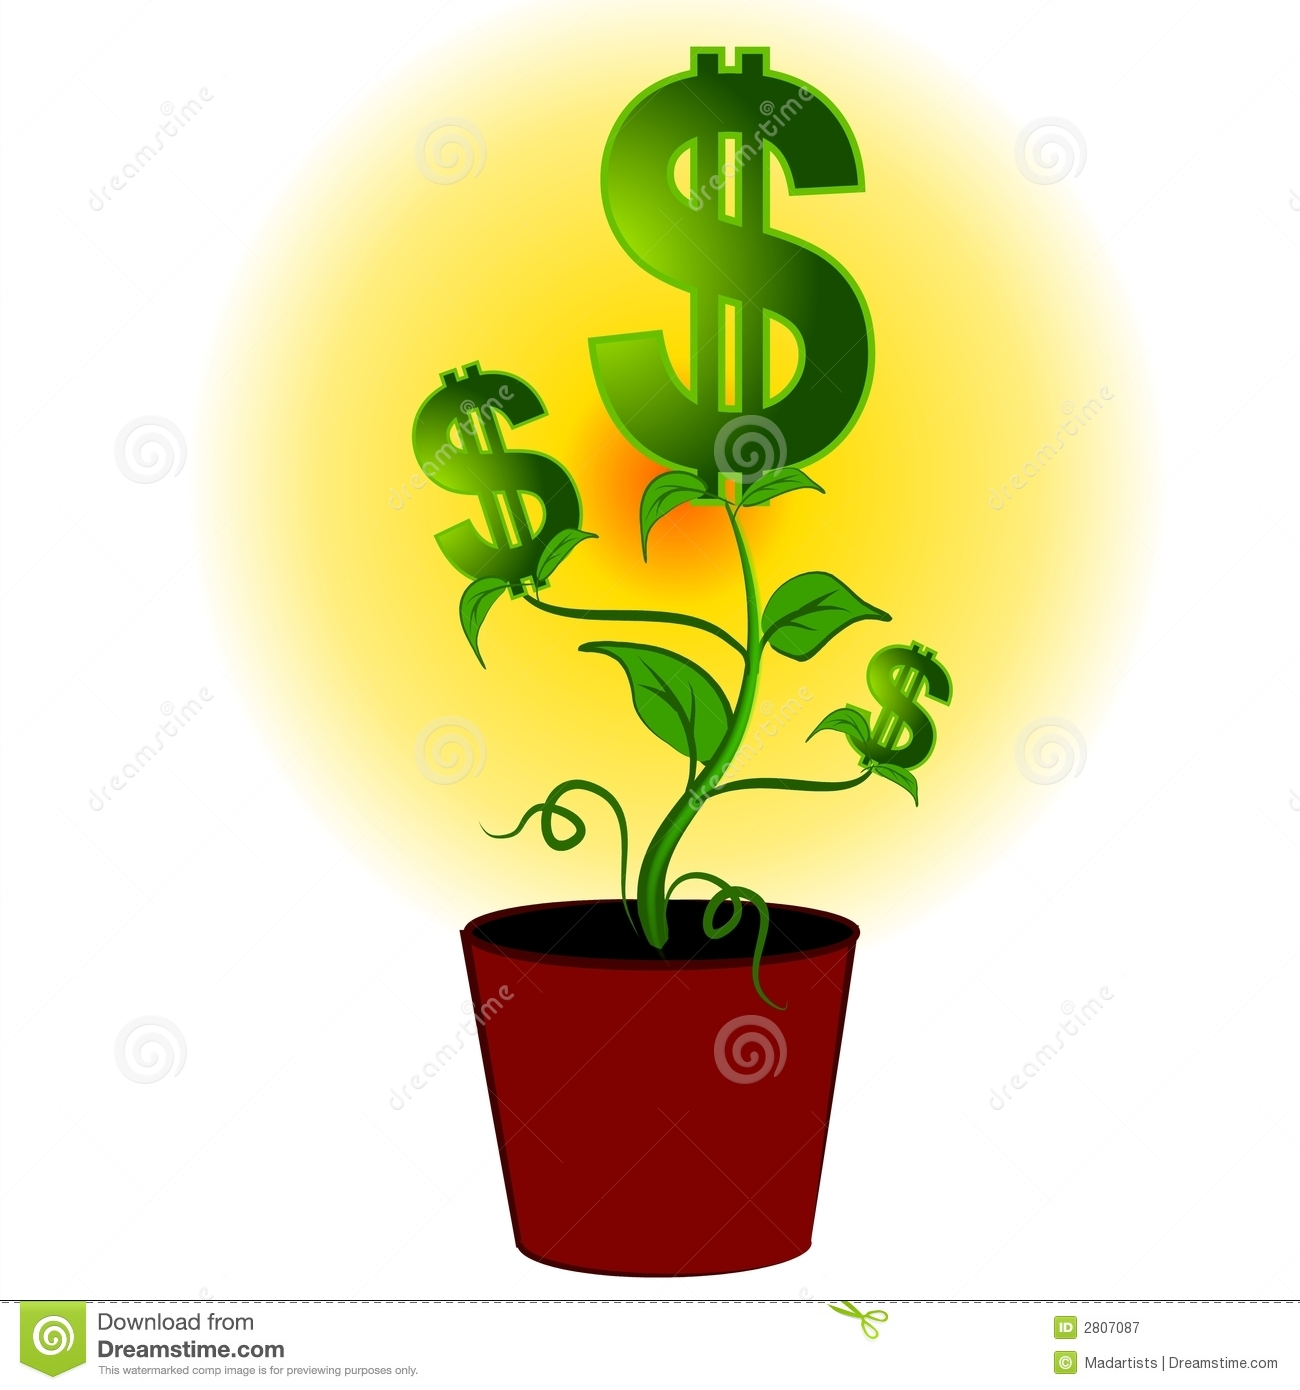 Money plant images clipart svg freeuse stock Dollar Signs Money Plant Tree Royalty Free Stock Photography ... svg freeuse stock